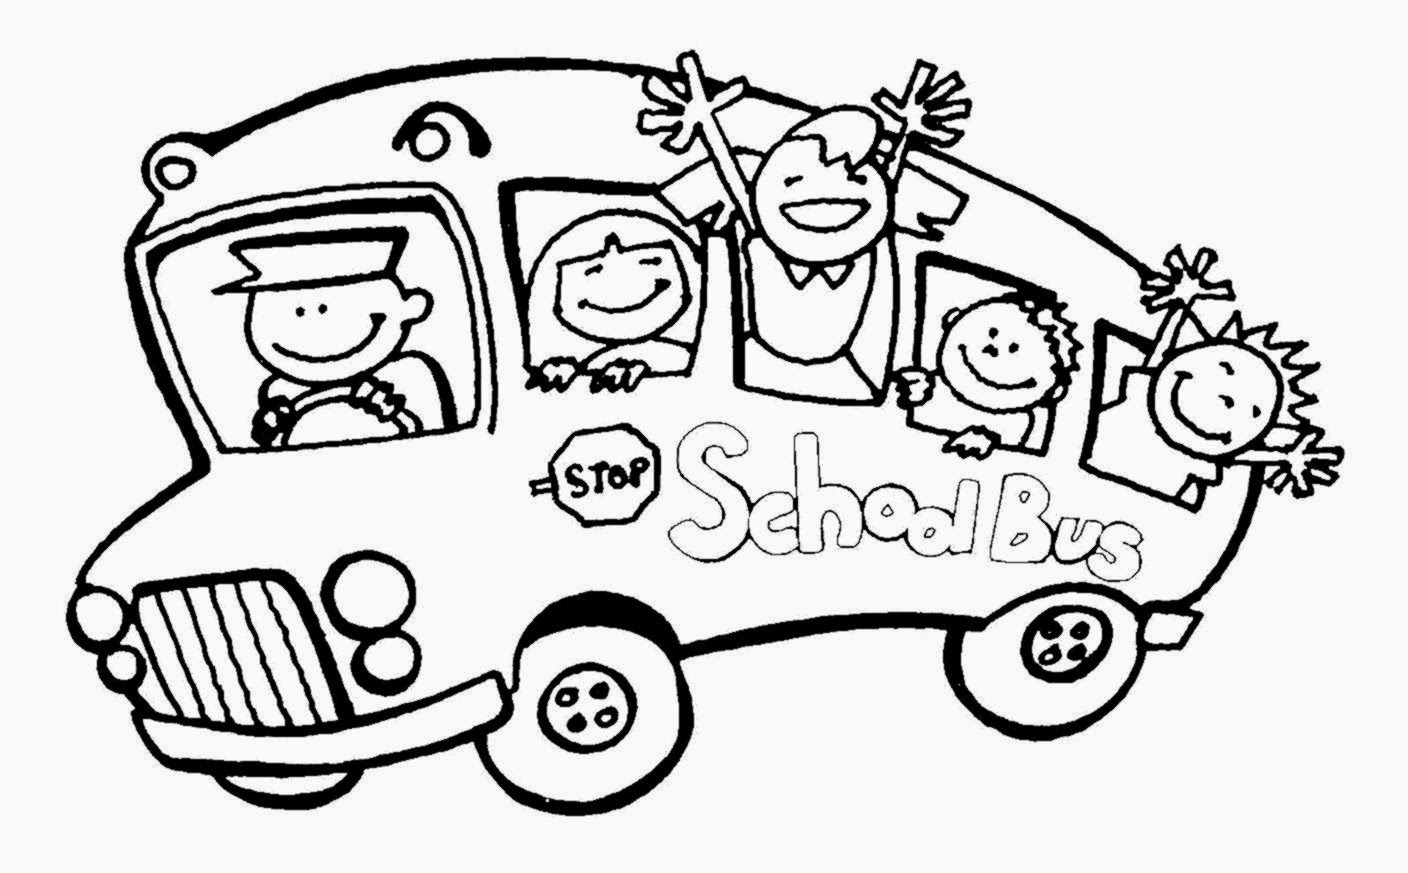 School bus coloring pictures free coloring pictures for Coloring pages school bus